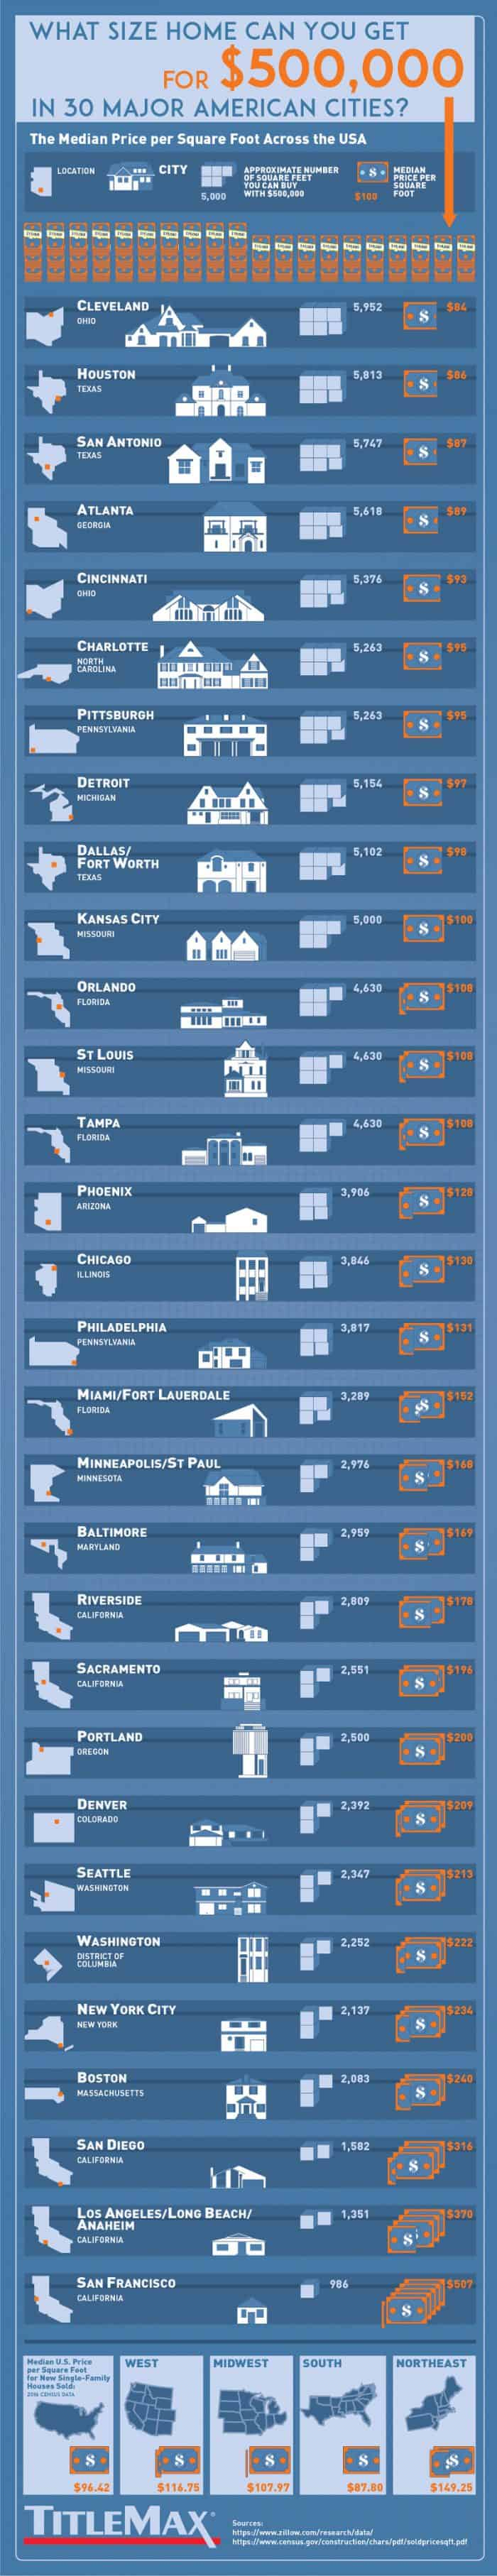 The types of homes you can buy for 500k around the US